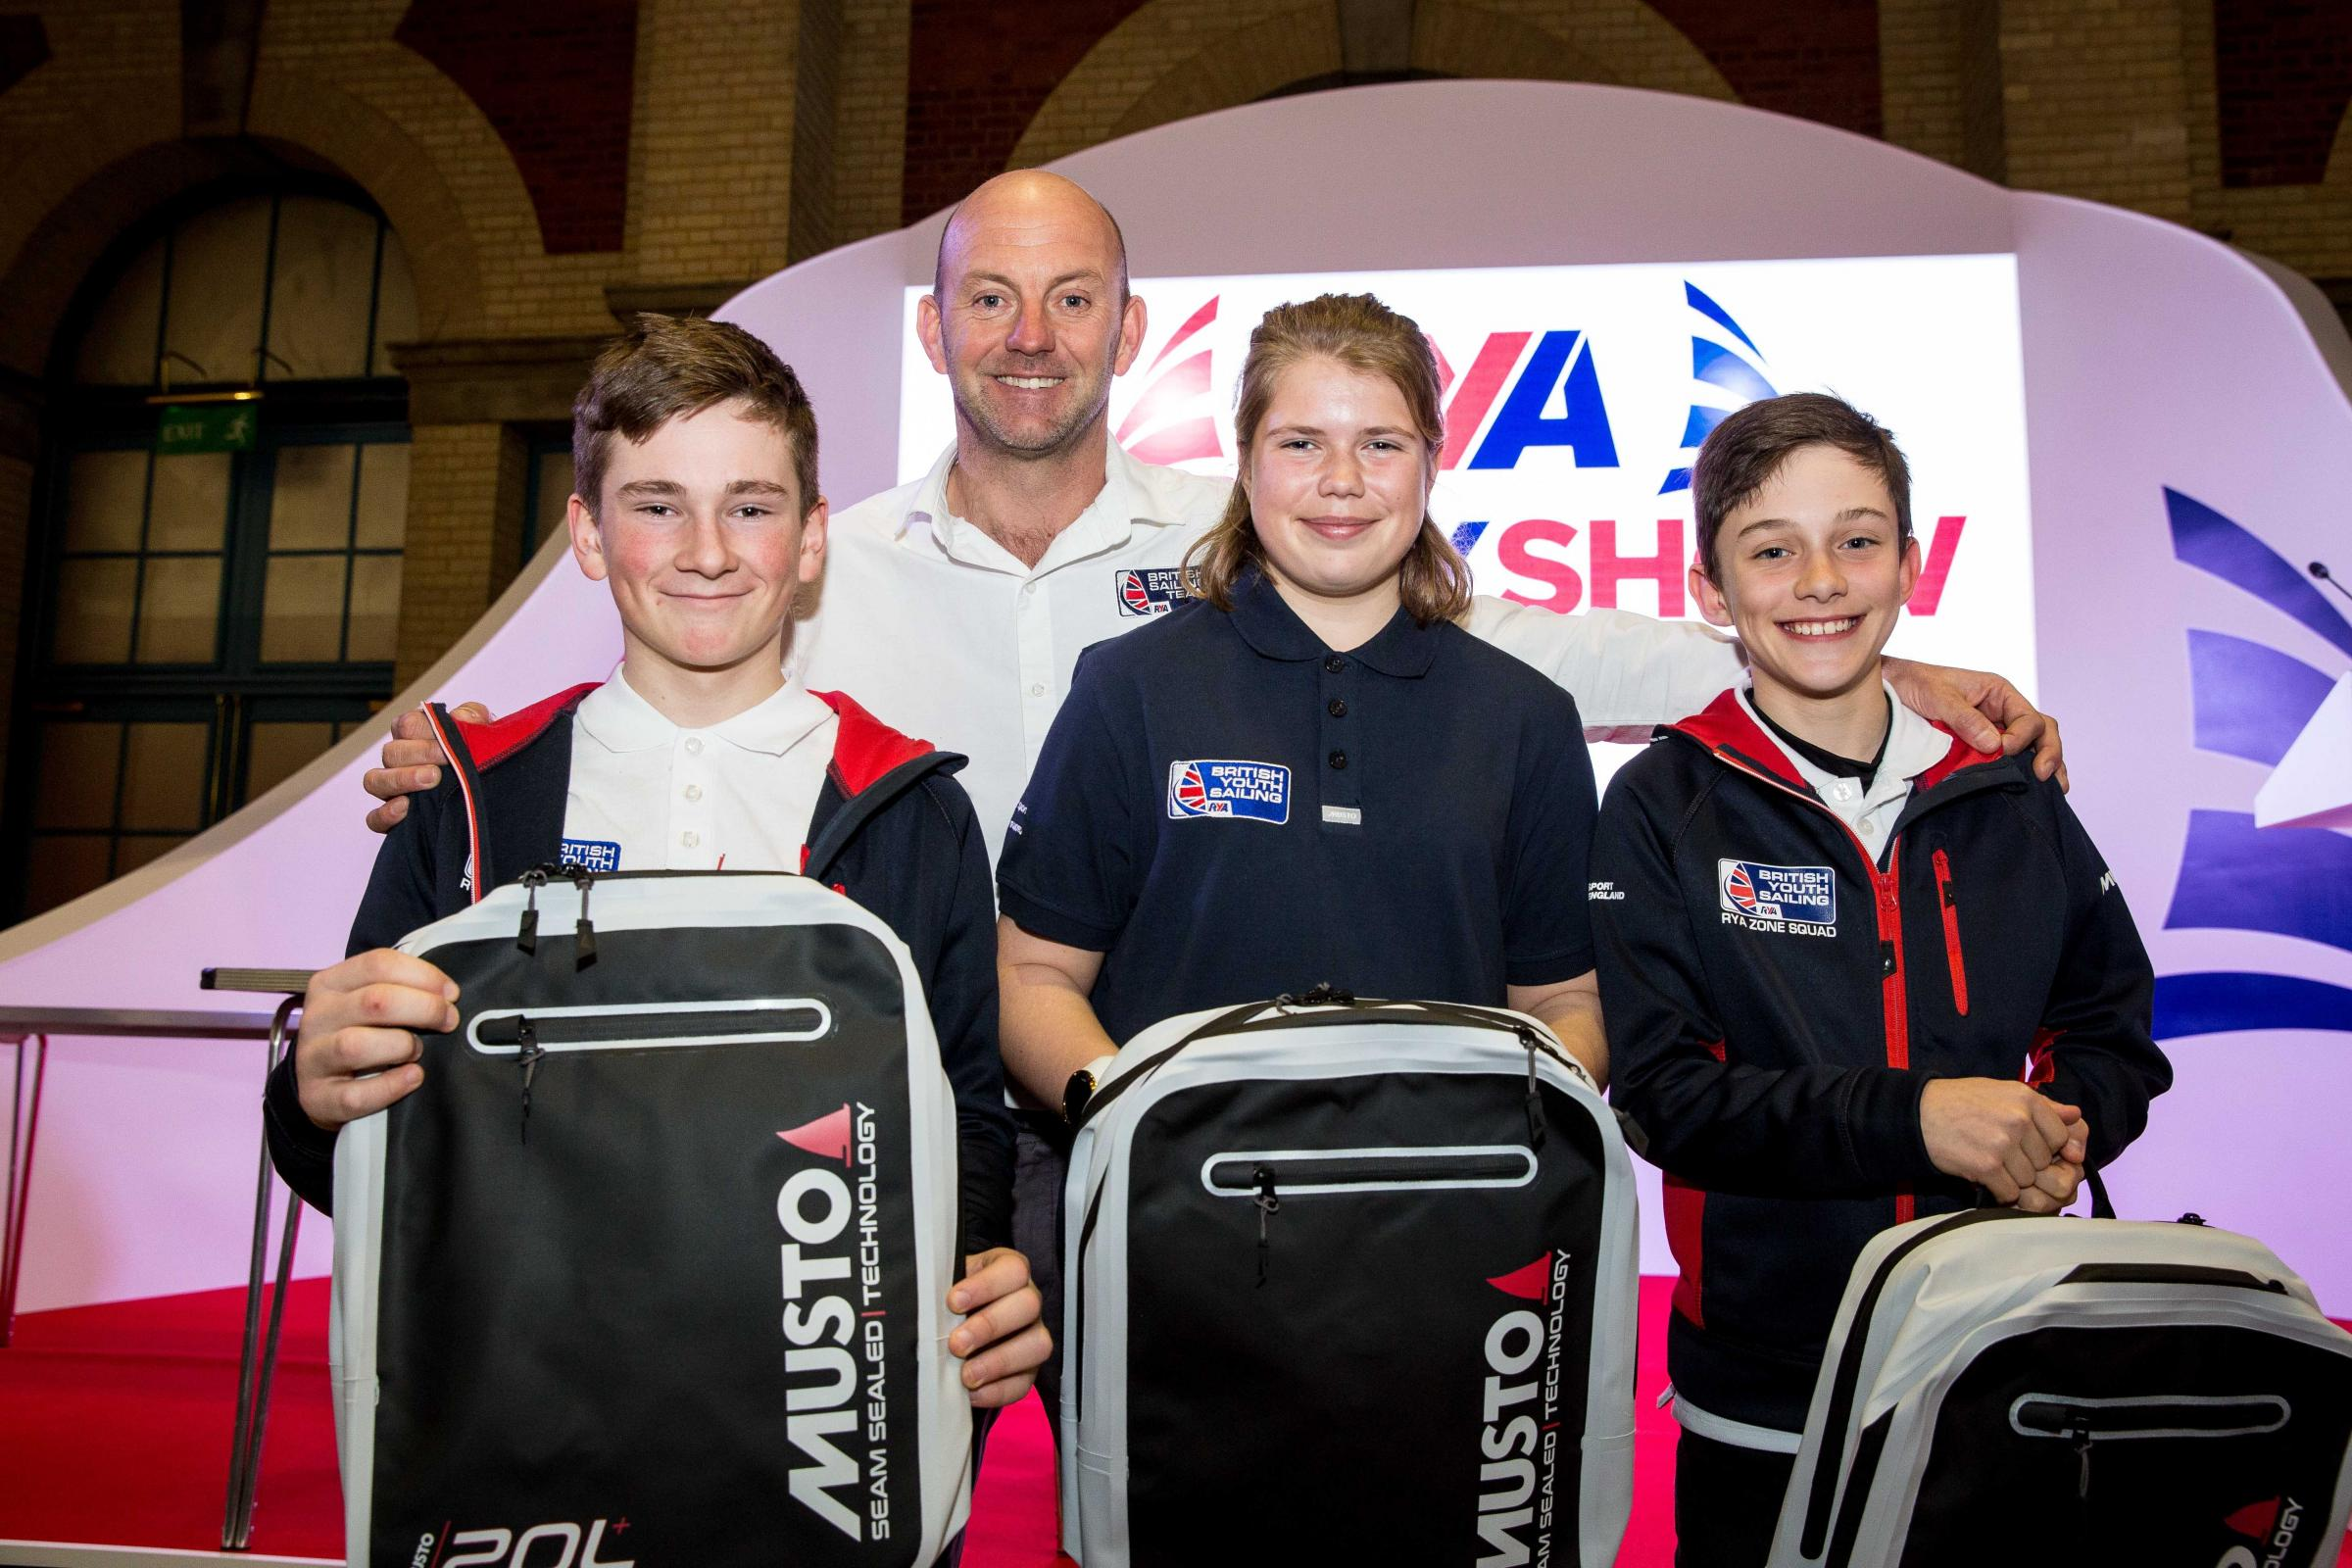 Ian Walker MBE presents awards to competition winners Ed Baker, 14, Catrin Williams, 15 and David Bromilow, 12. PIC: Emily Whiting.